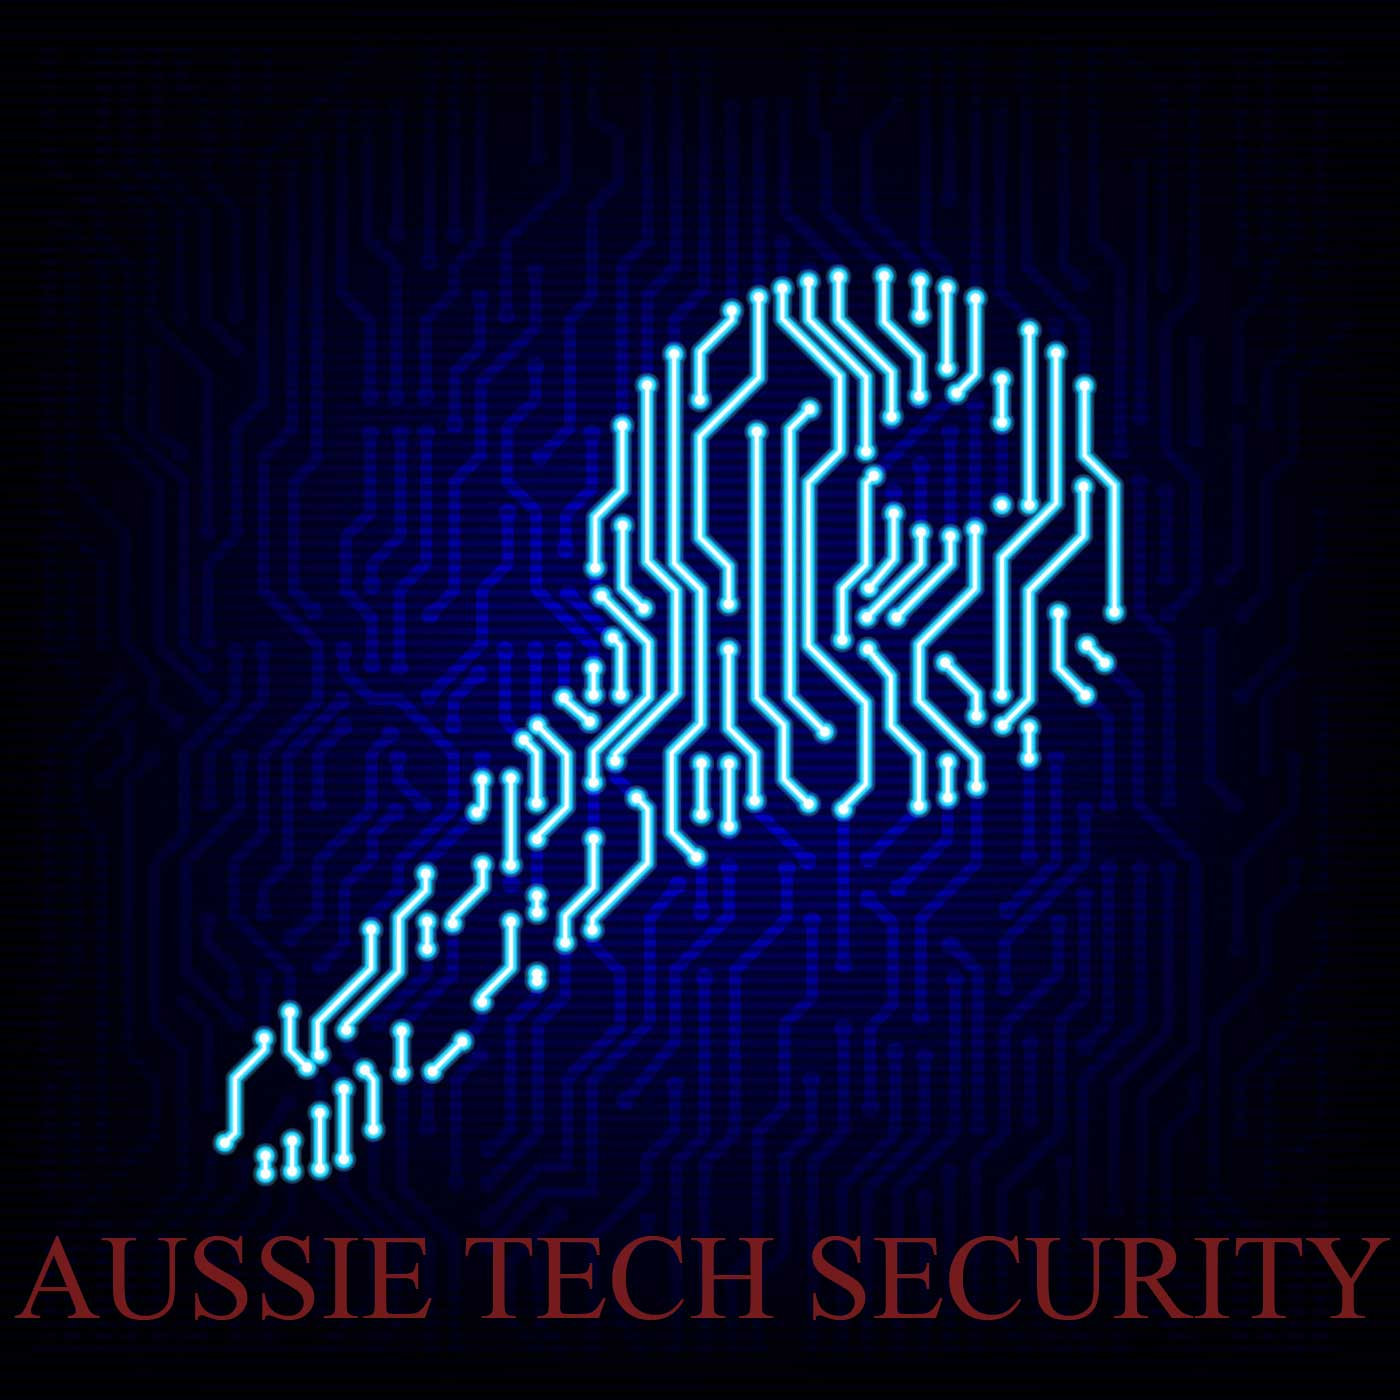 Aussie Tech Security Ozpodcasts Circuit Board Vector Illustration Royalty Free Stock Image